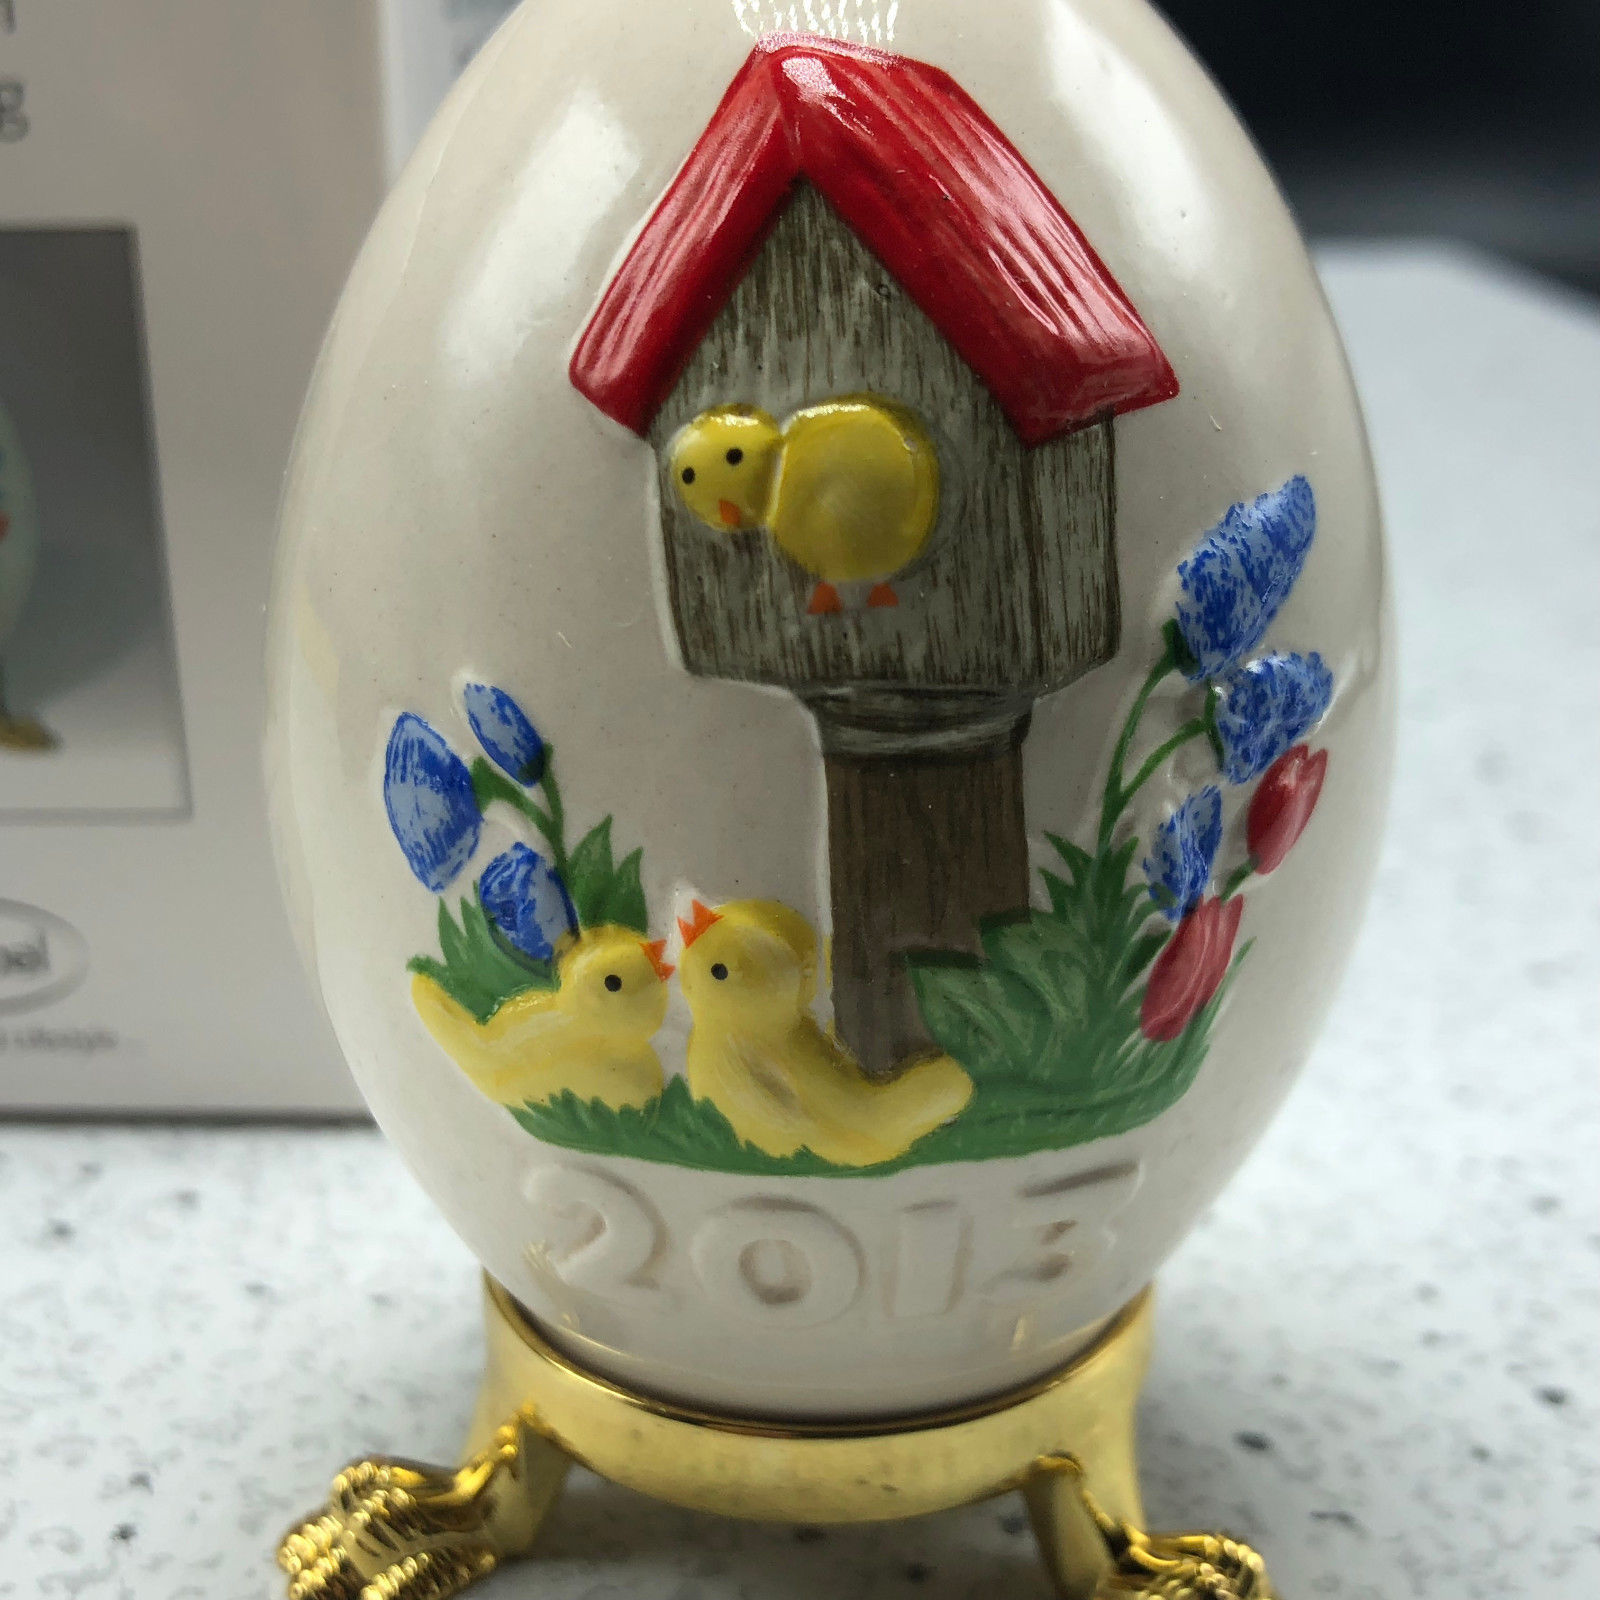 2013 GOEBEL ANNUAL EASTER EGG West Germany 36th edition figurine bird house chic